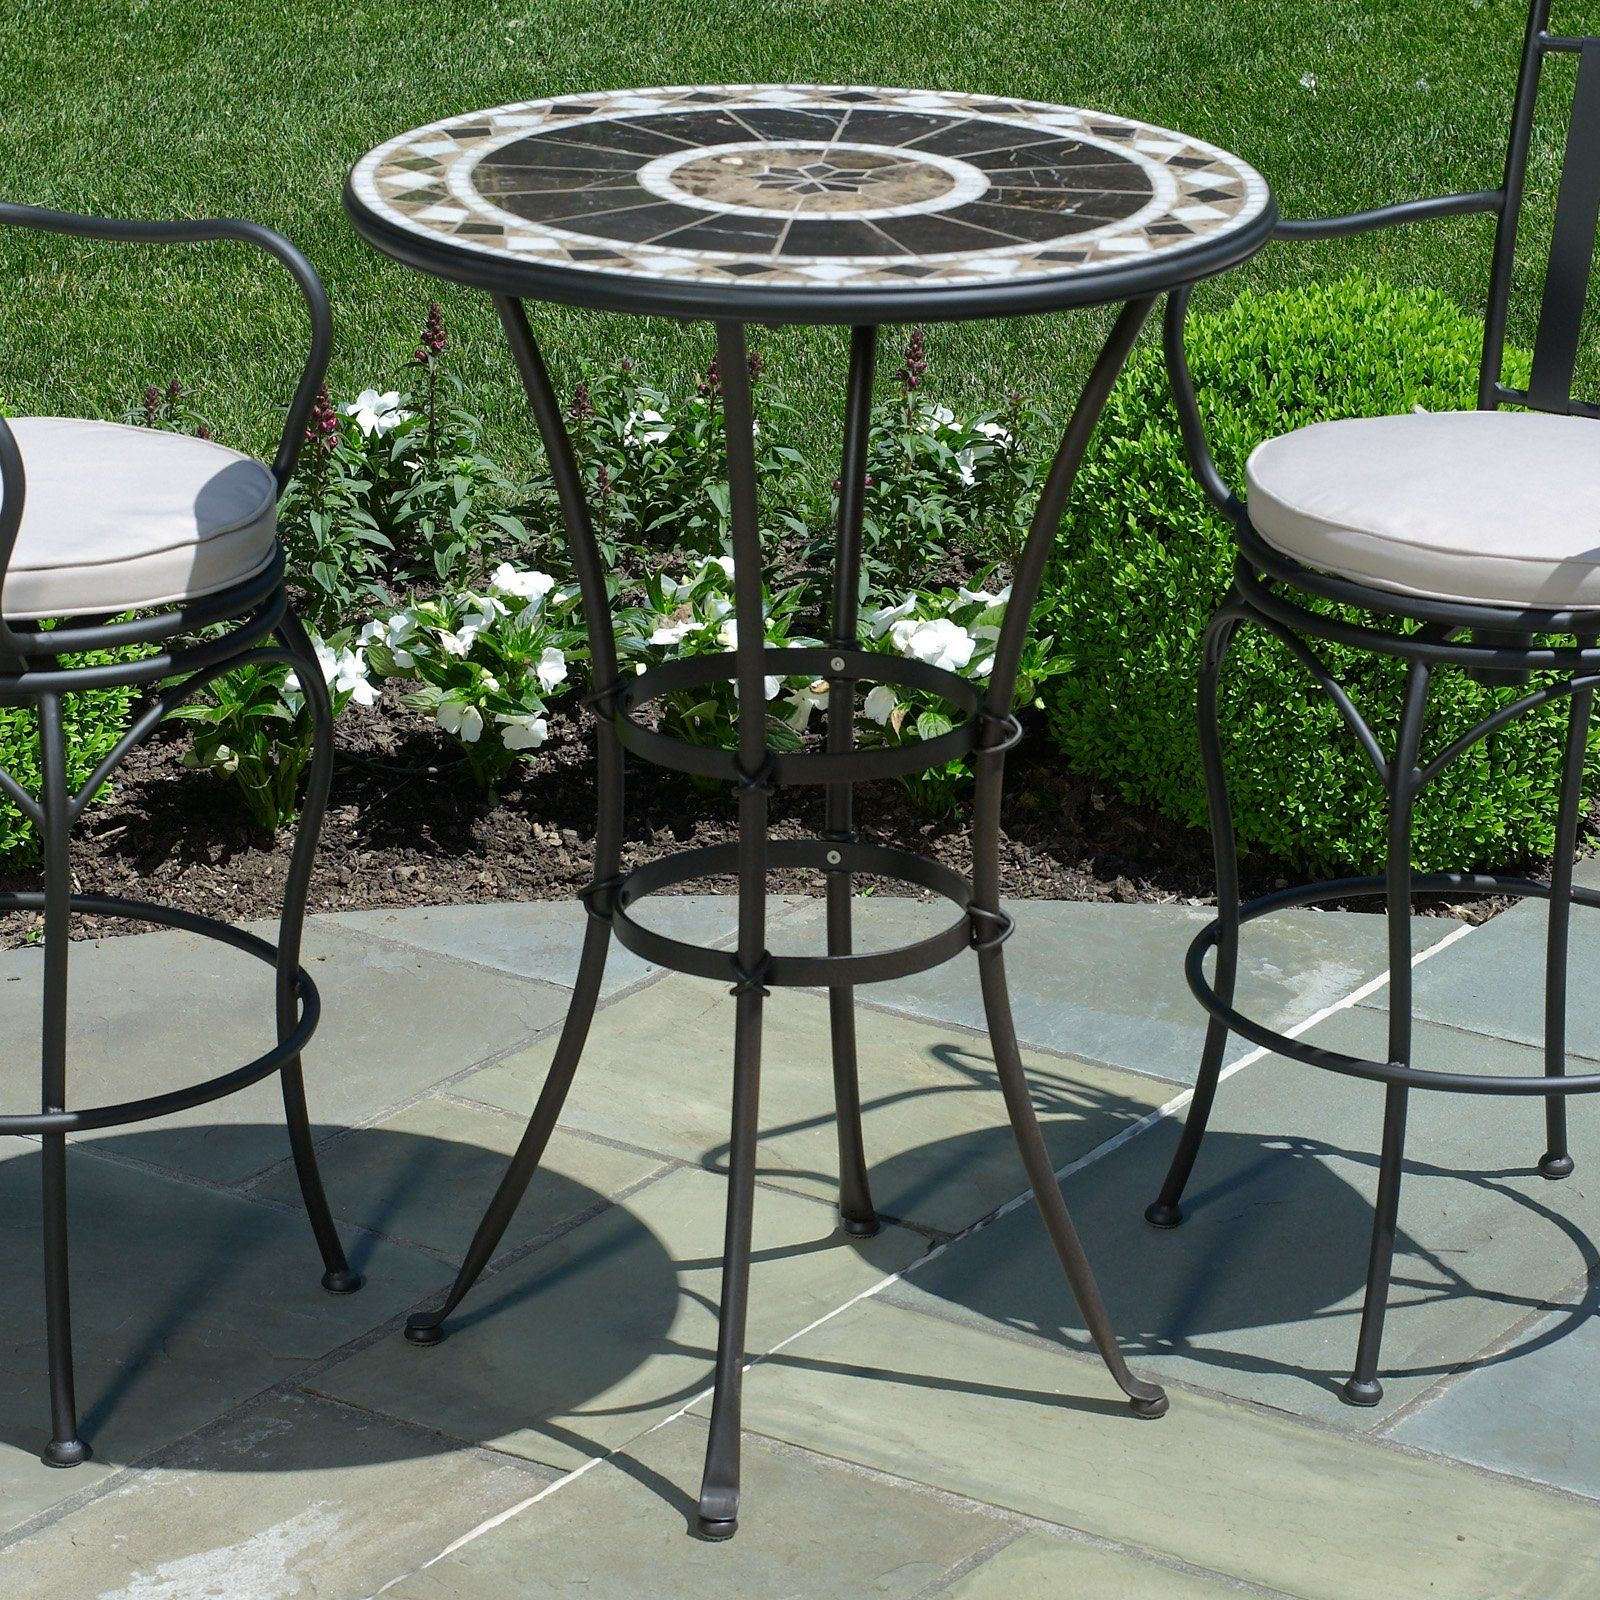 Round Patio Furniture Small Elegant Peerless Round Table And Stools Bar Height Patio